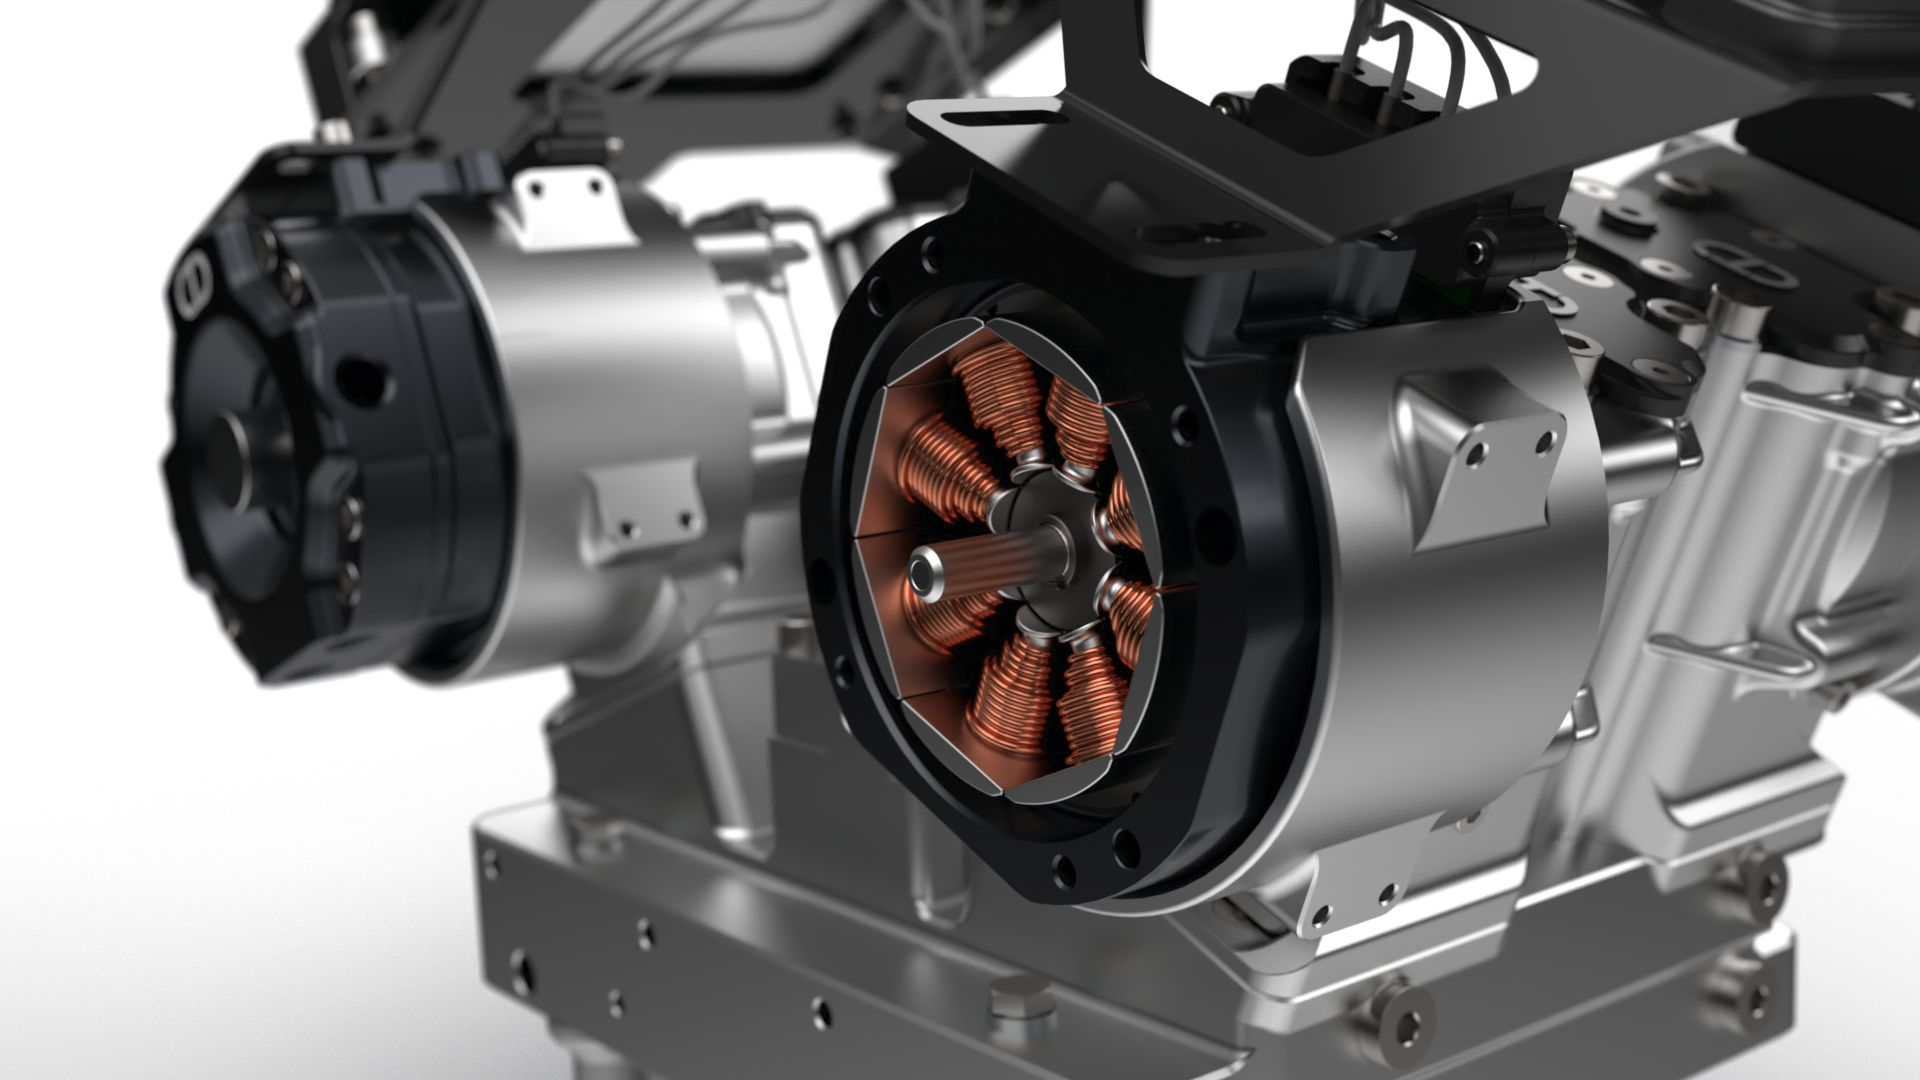 Camcon Auto and Drive System Design developing intelligent valve technology